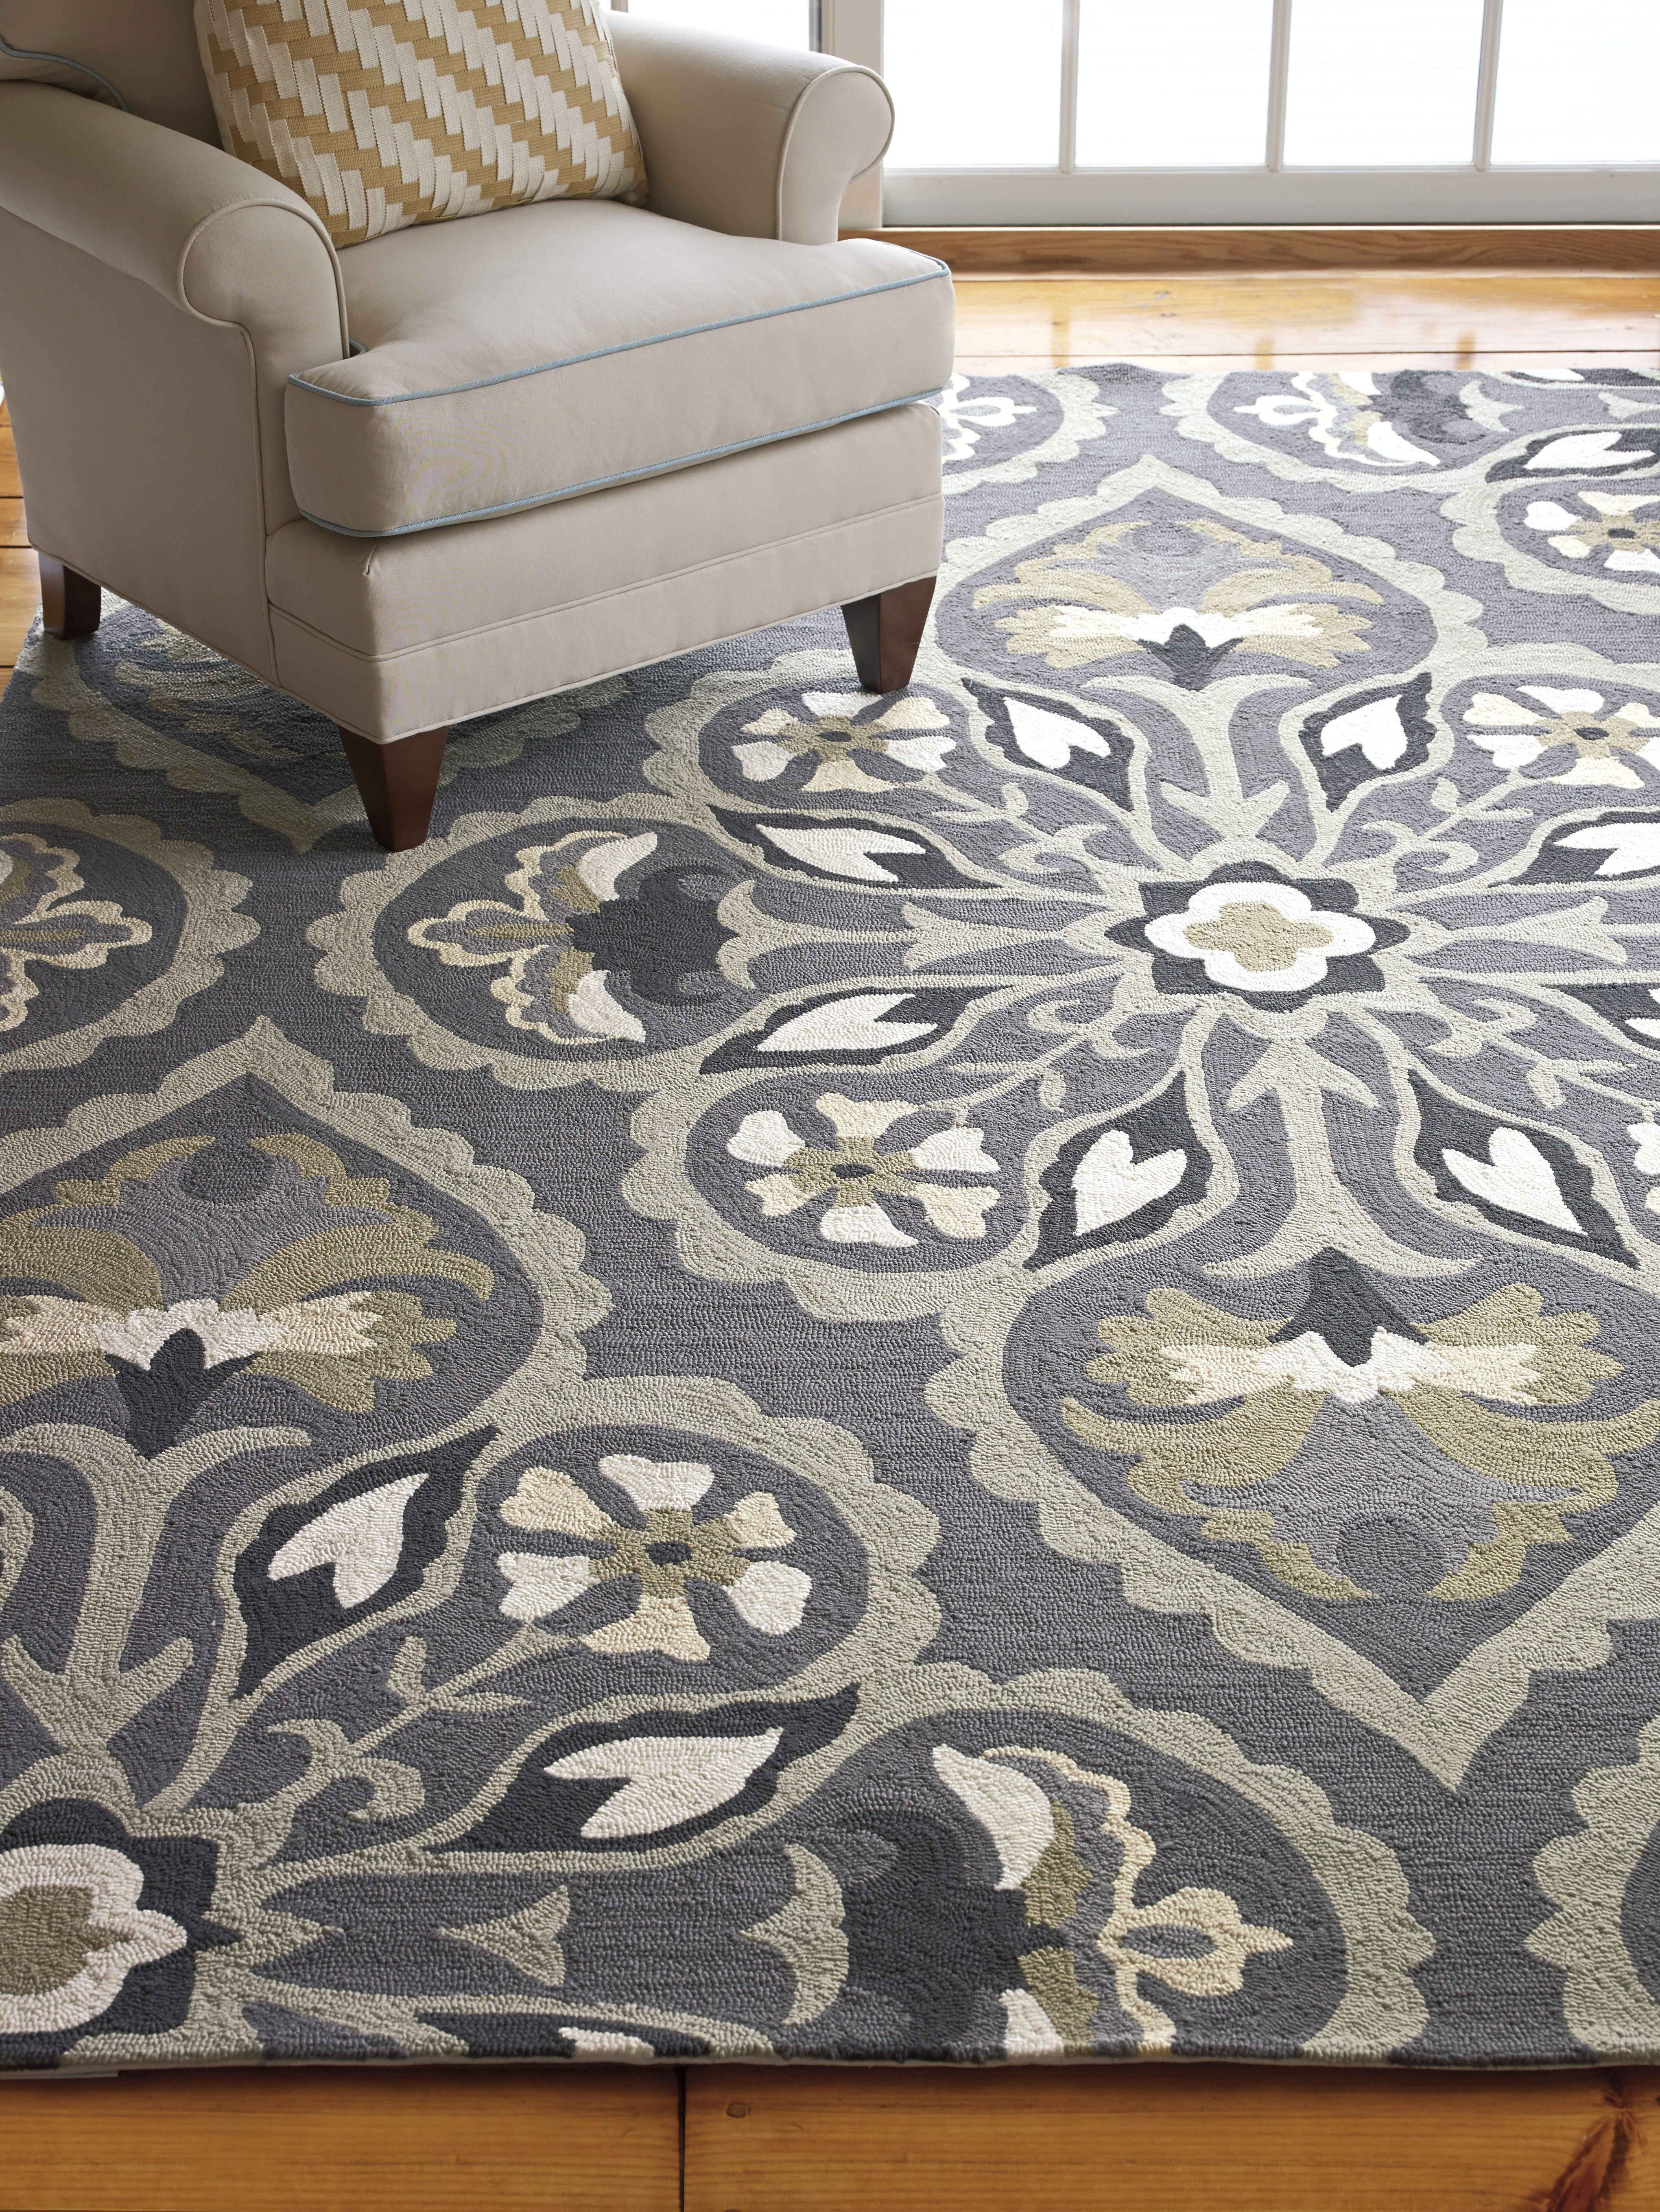 Hand Hooked Of Durable Polypropylene Company C S Pierre Rug S